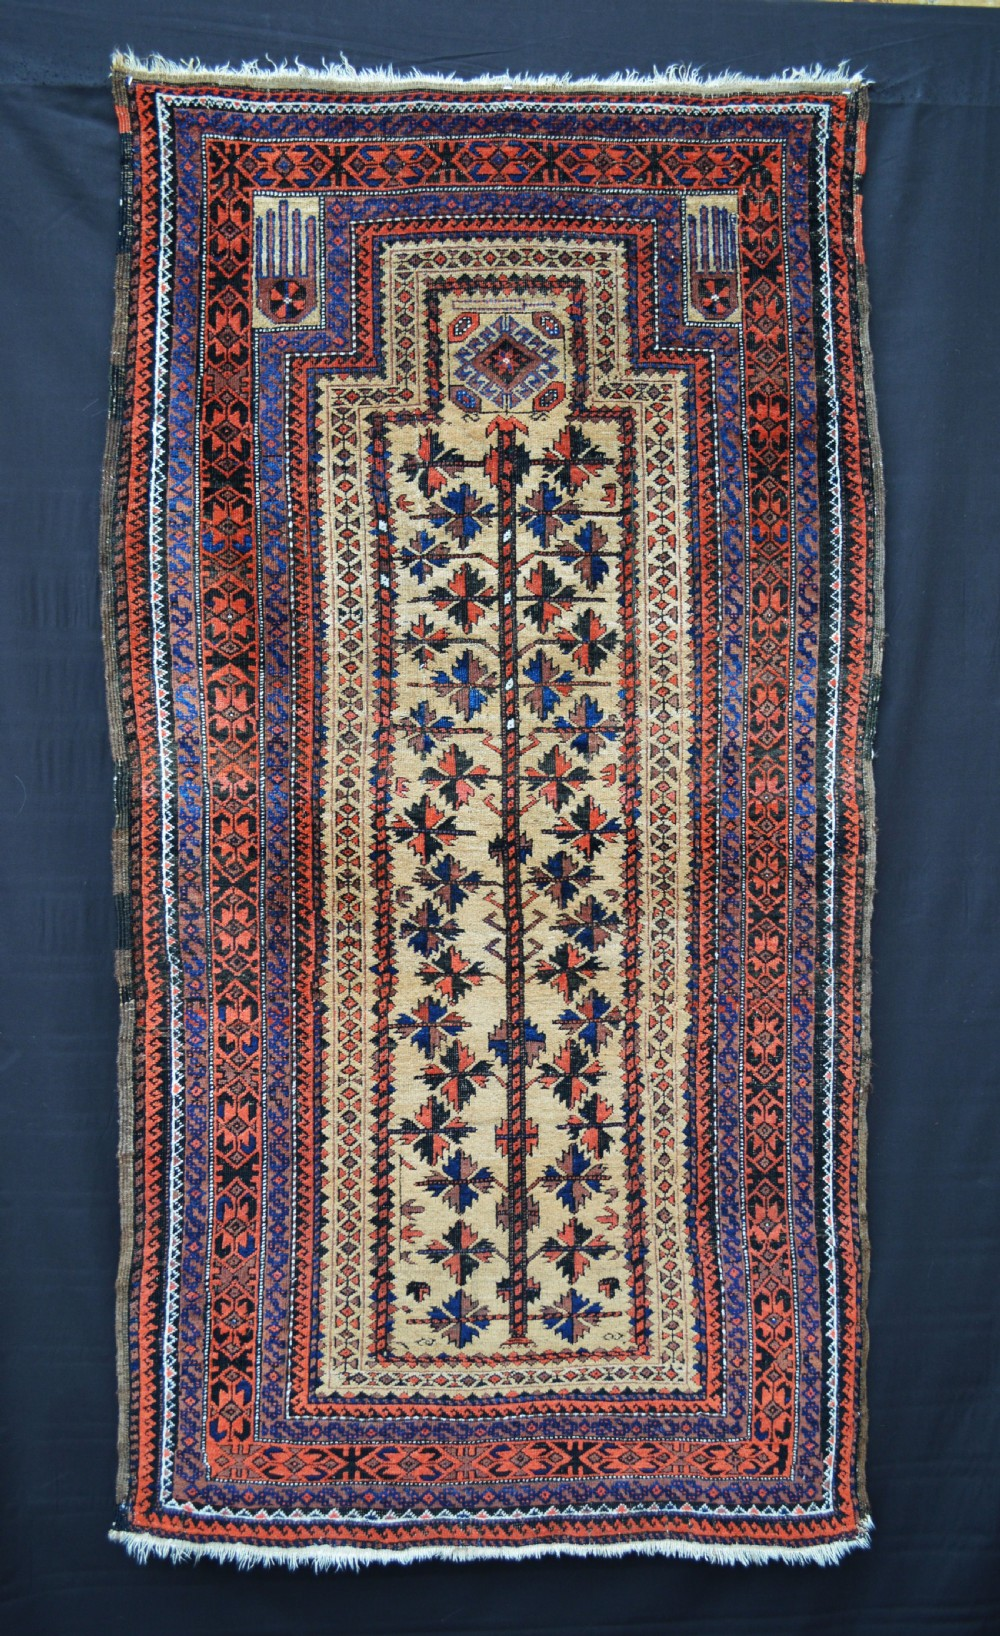 antique prayerrug baluch tribes khorassan province northeast persia